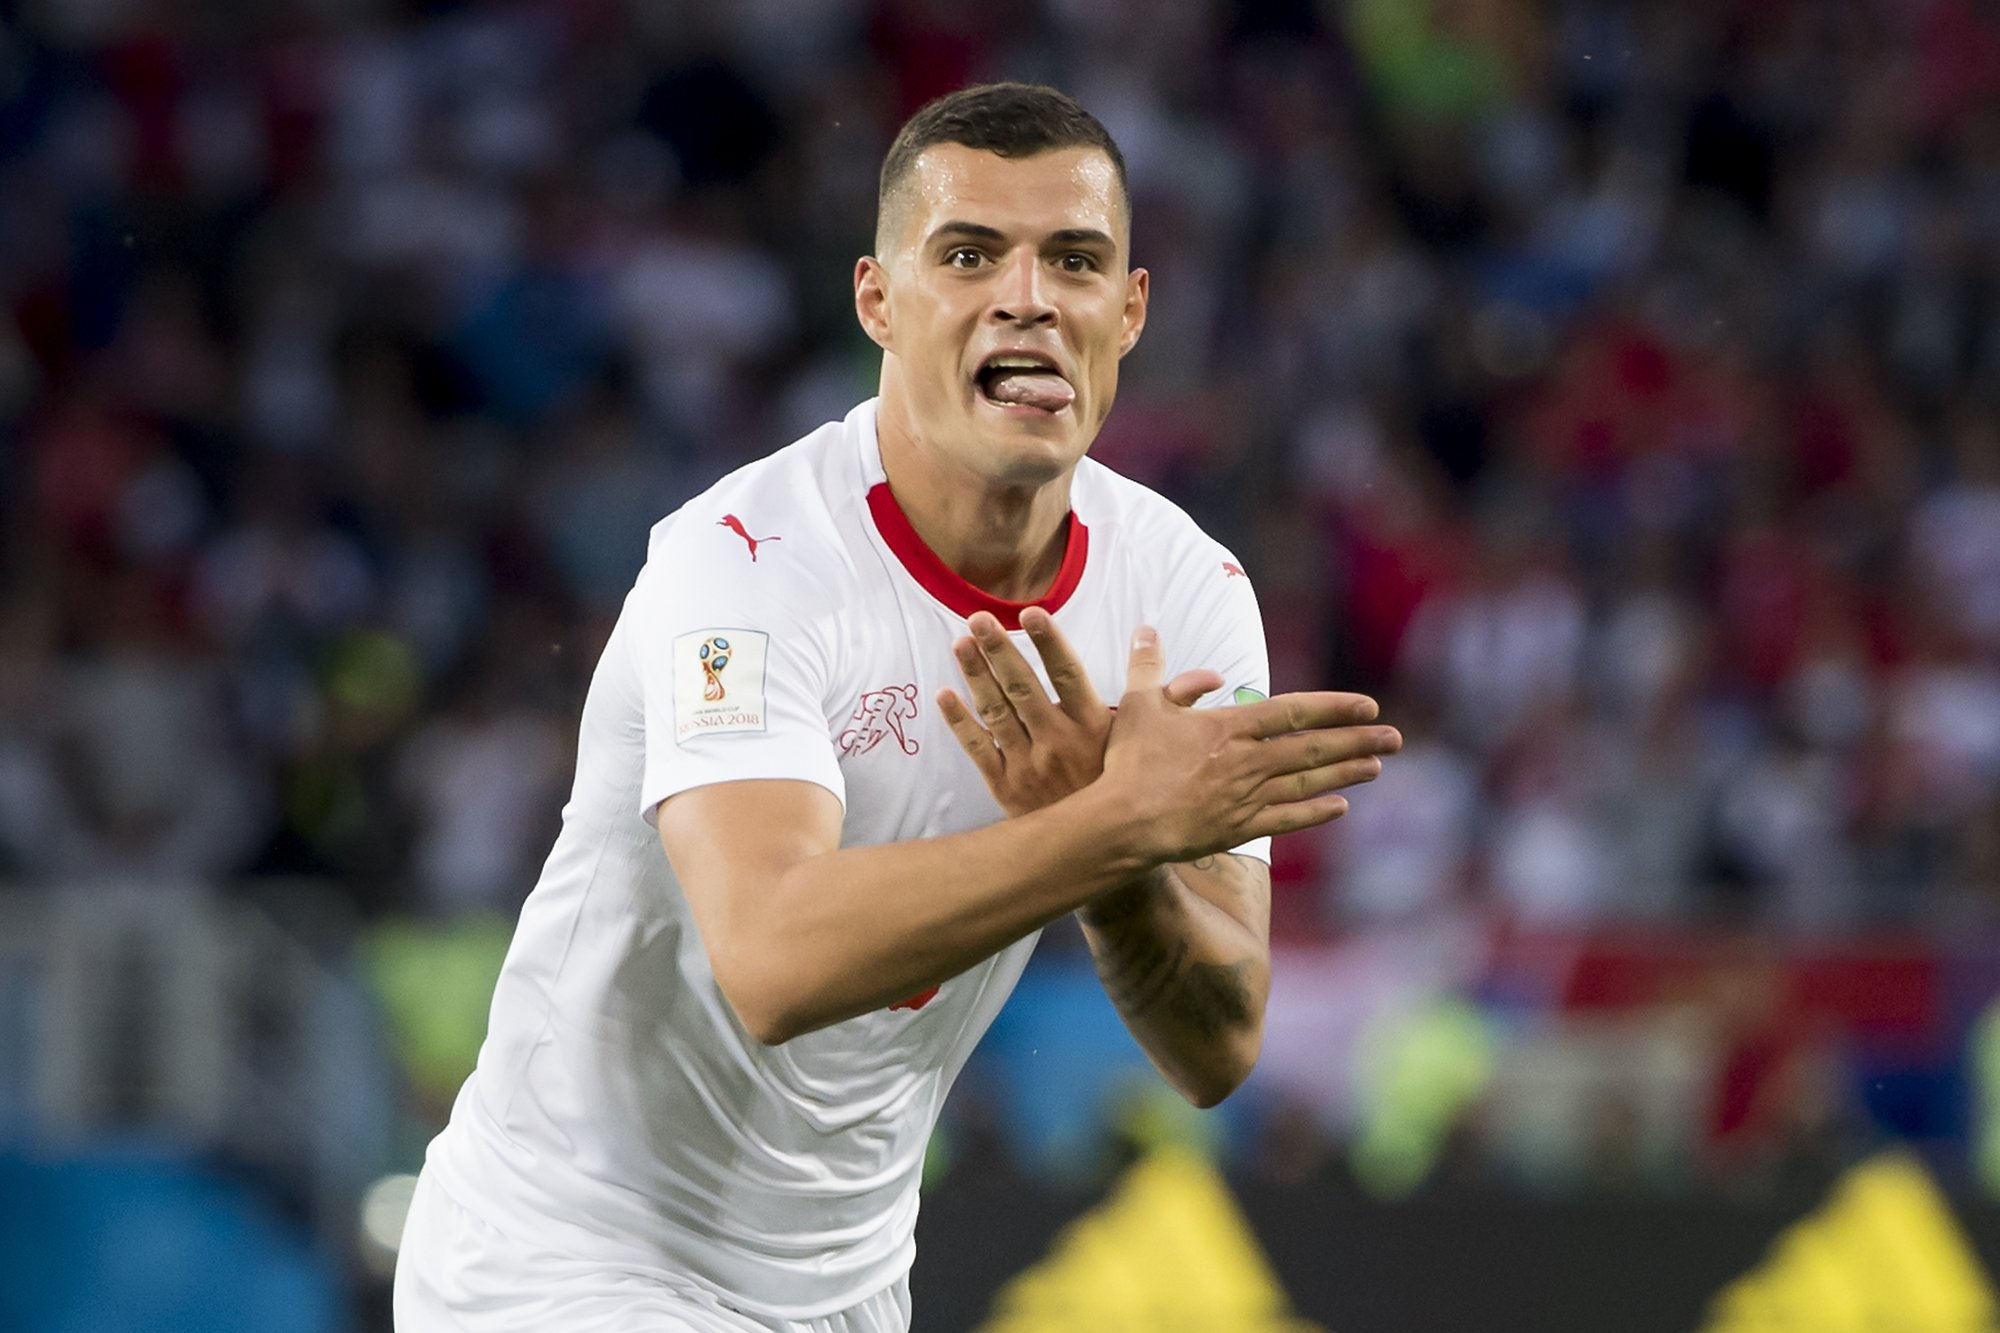 Granit Xhaka and Xherdan Shaqiri face fines from FIFA for celebrations in Switzerland's win against Serbia